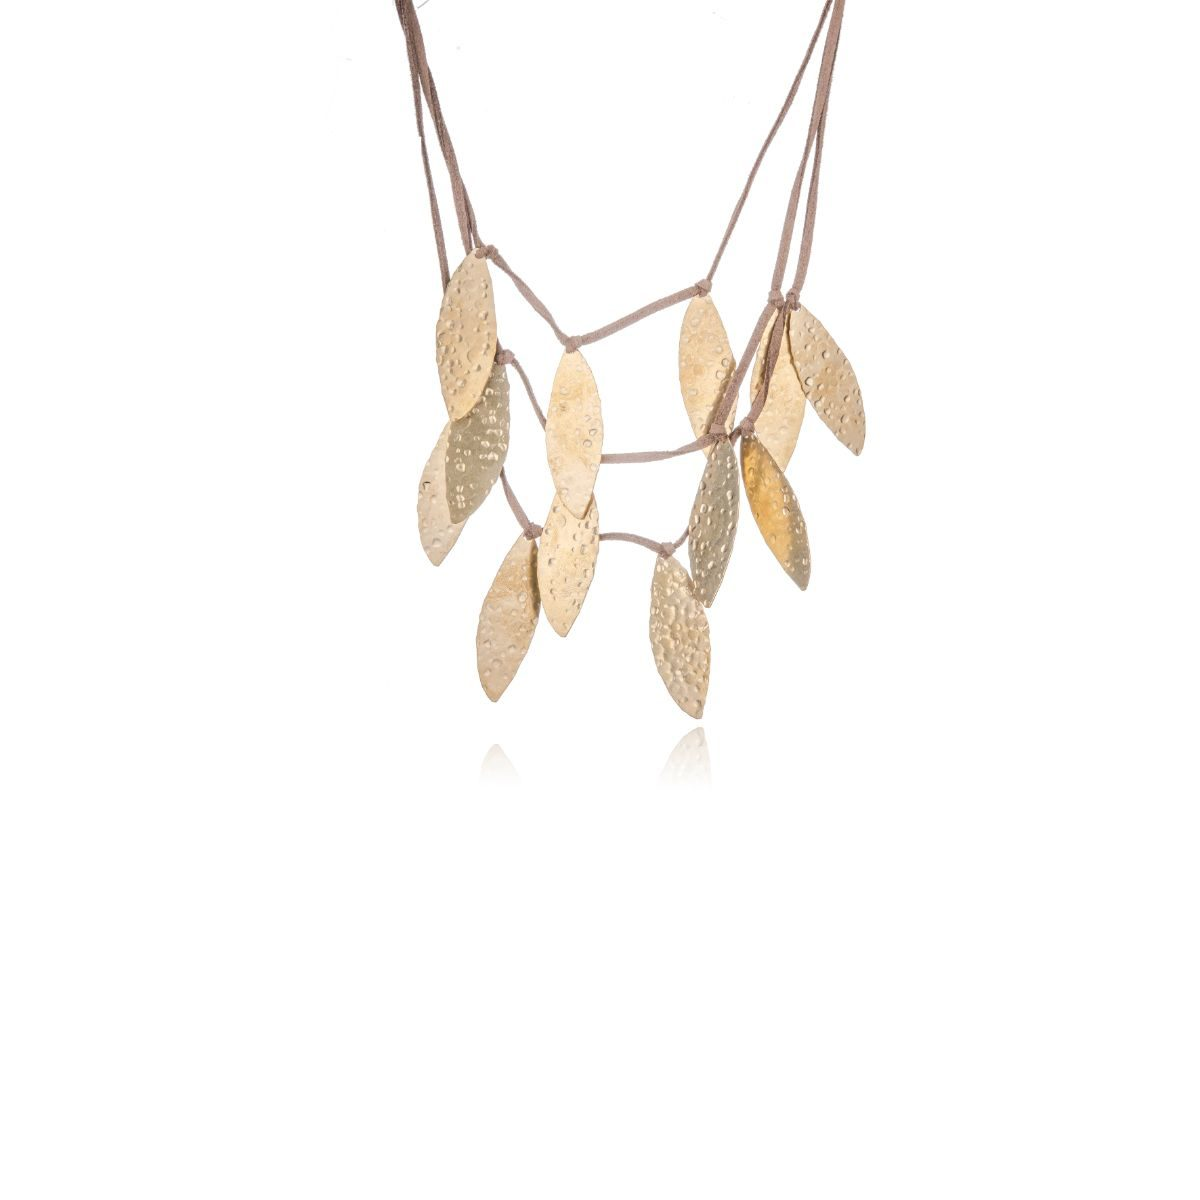 Short willow short necklace with three suede straps at different heights from which hang elongated gold-plated brass pieces